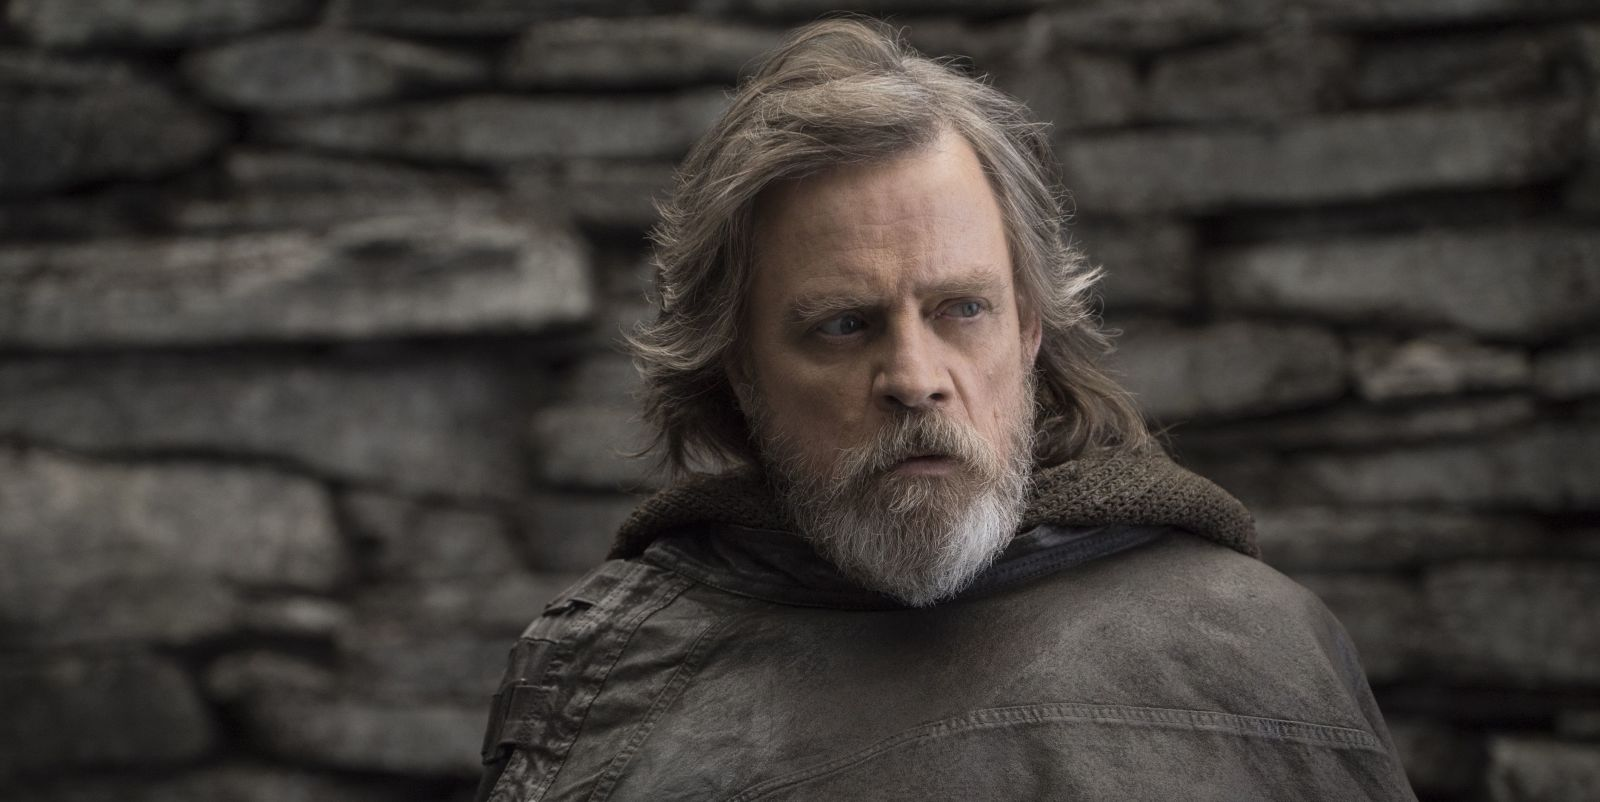 How Luke nearly left Ahch-To with Rey in Star Wars: The Last Jedi